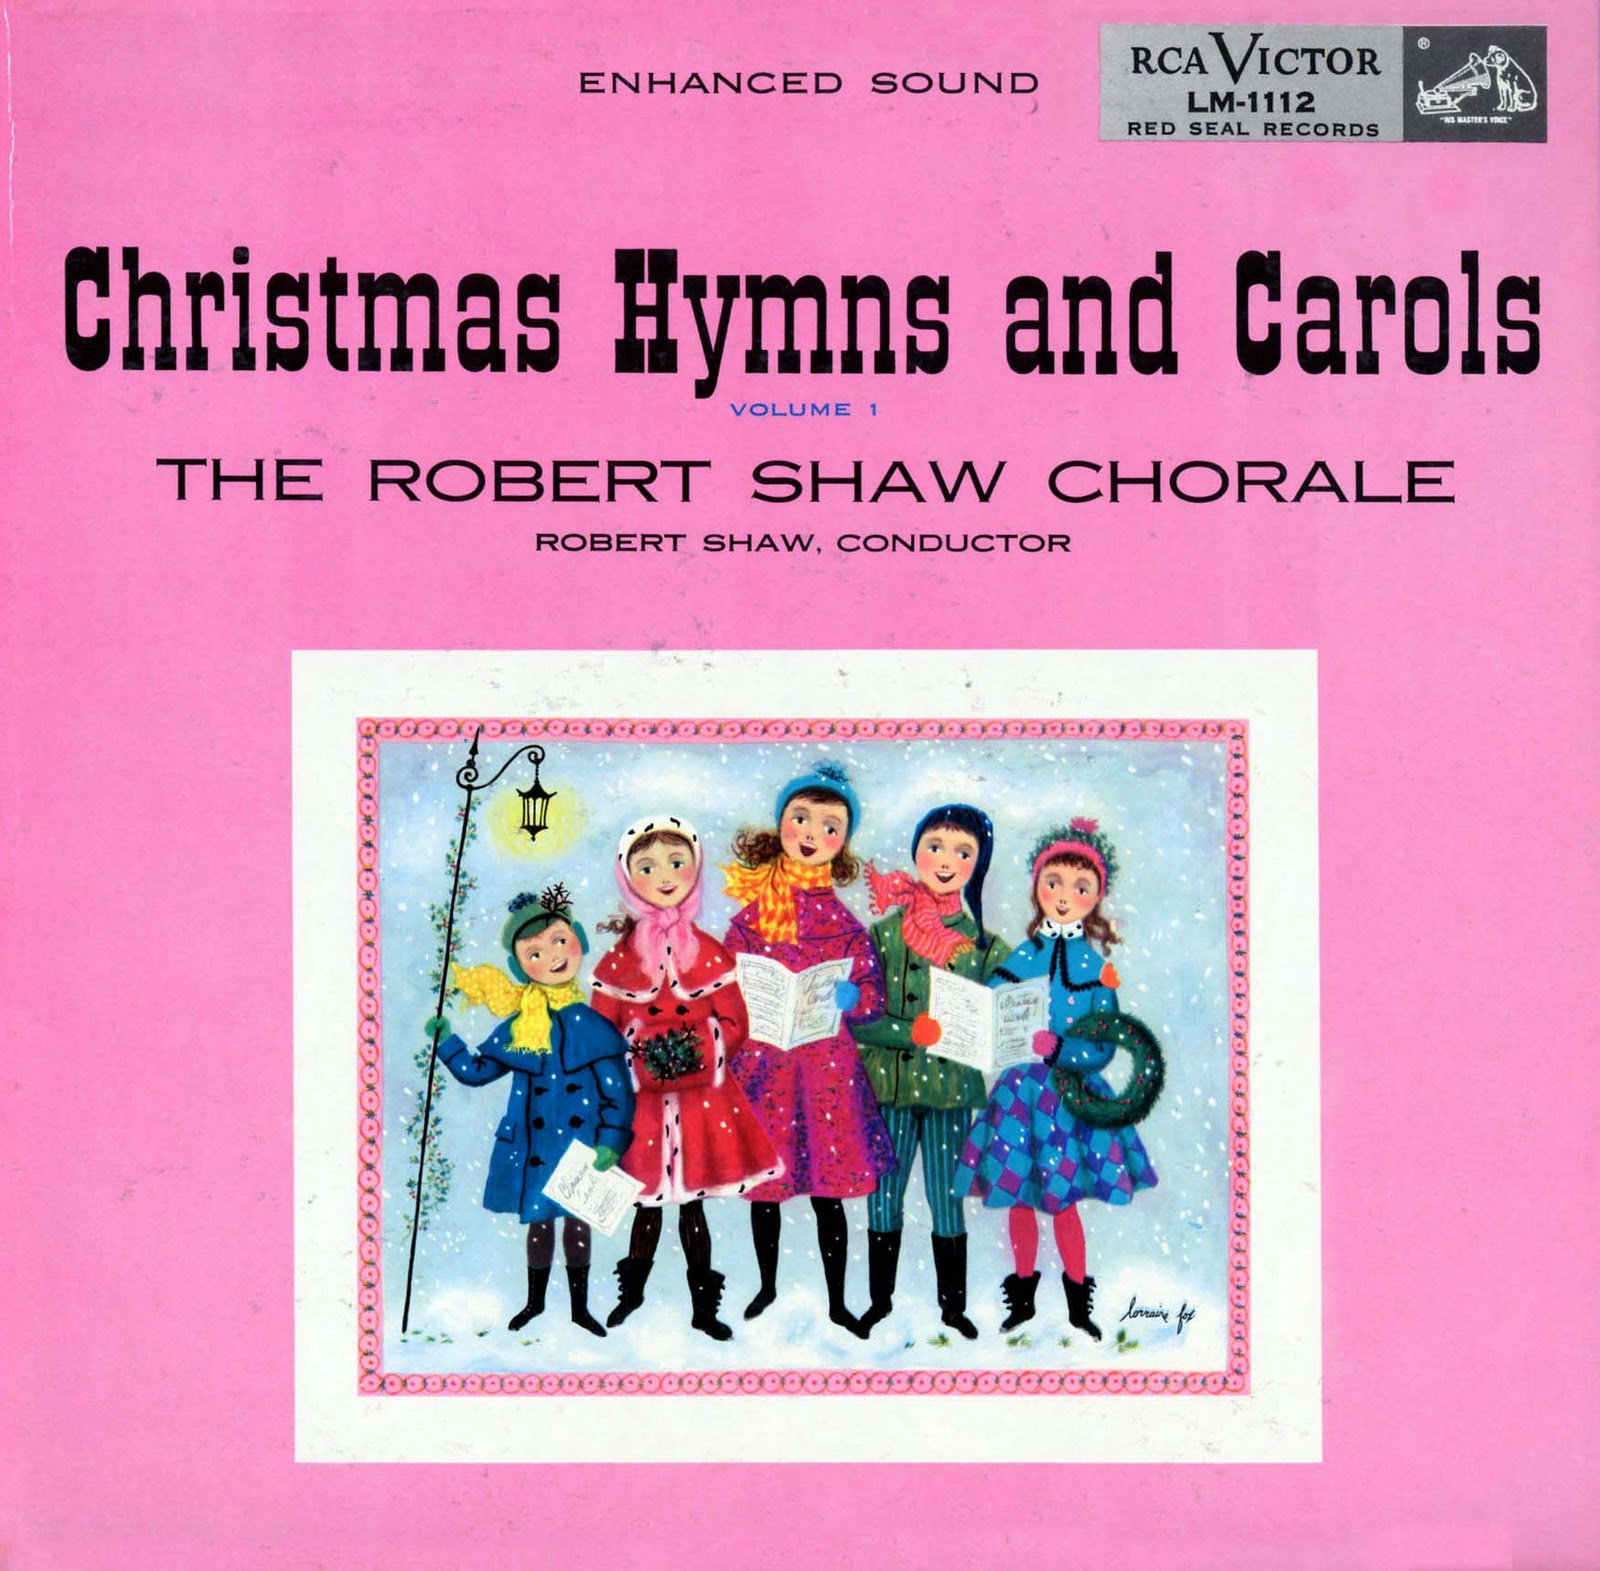 christmas hymns and carols - Best Selling Christmas Albums